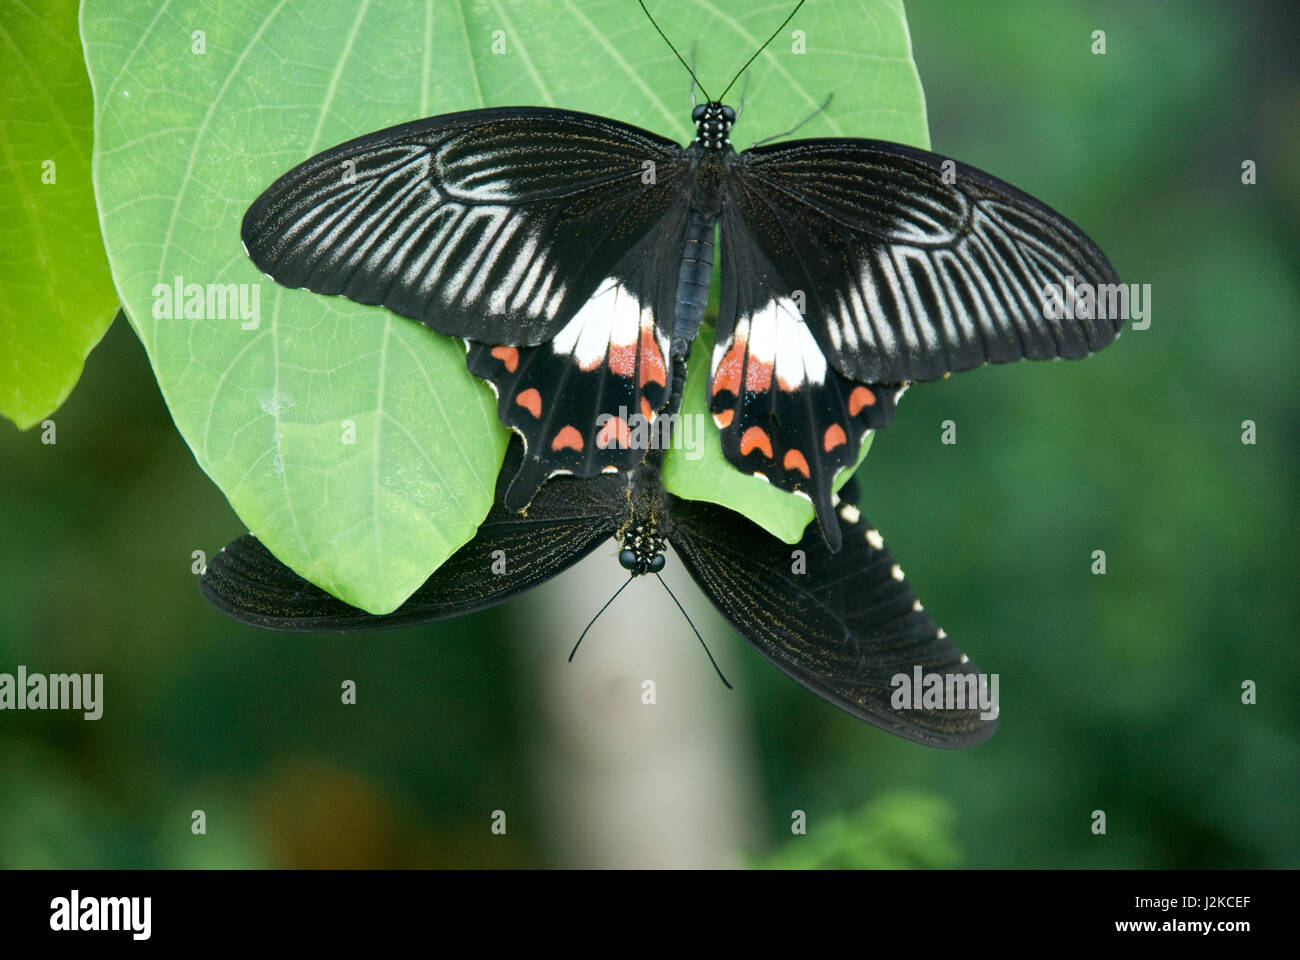 two butterflies on a leaf - Stock Image